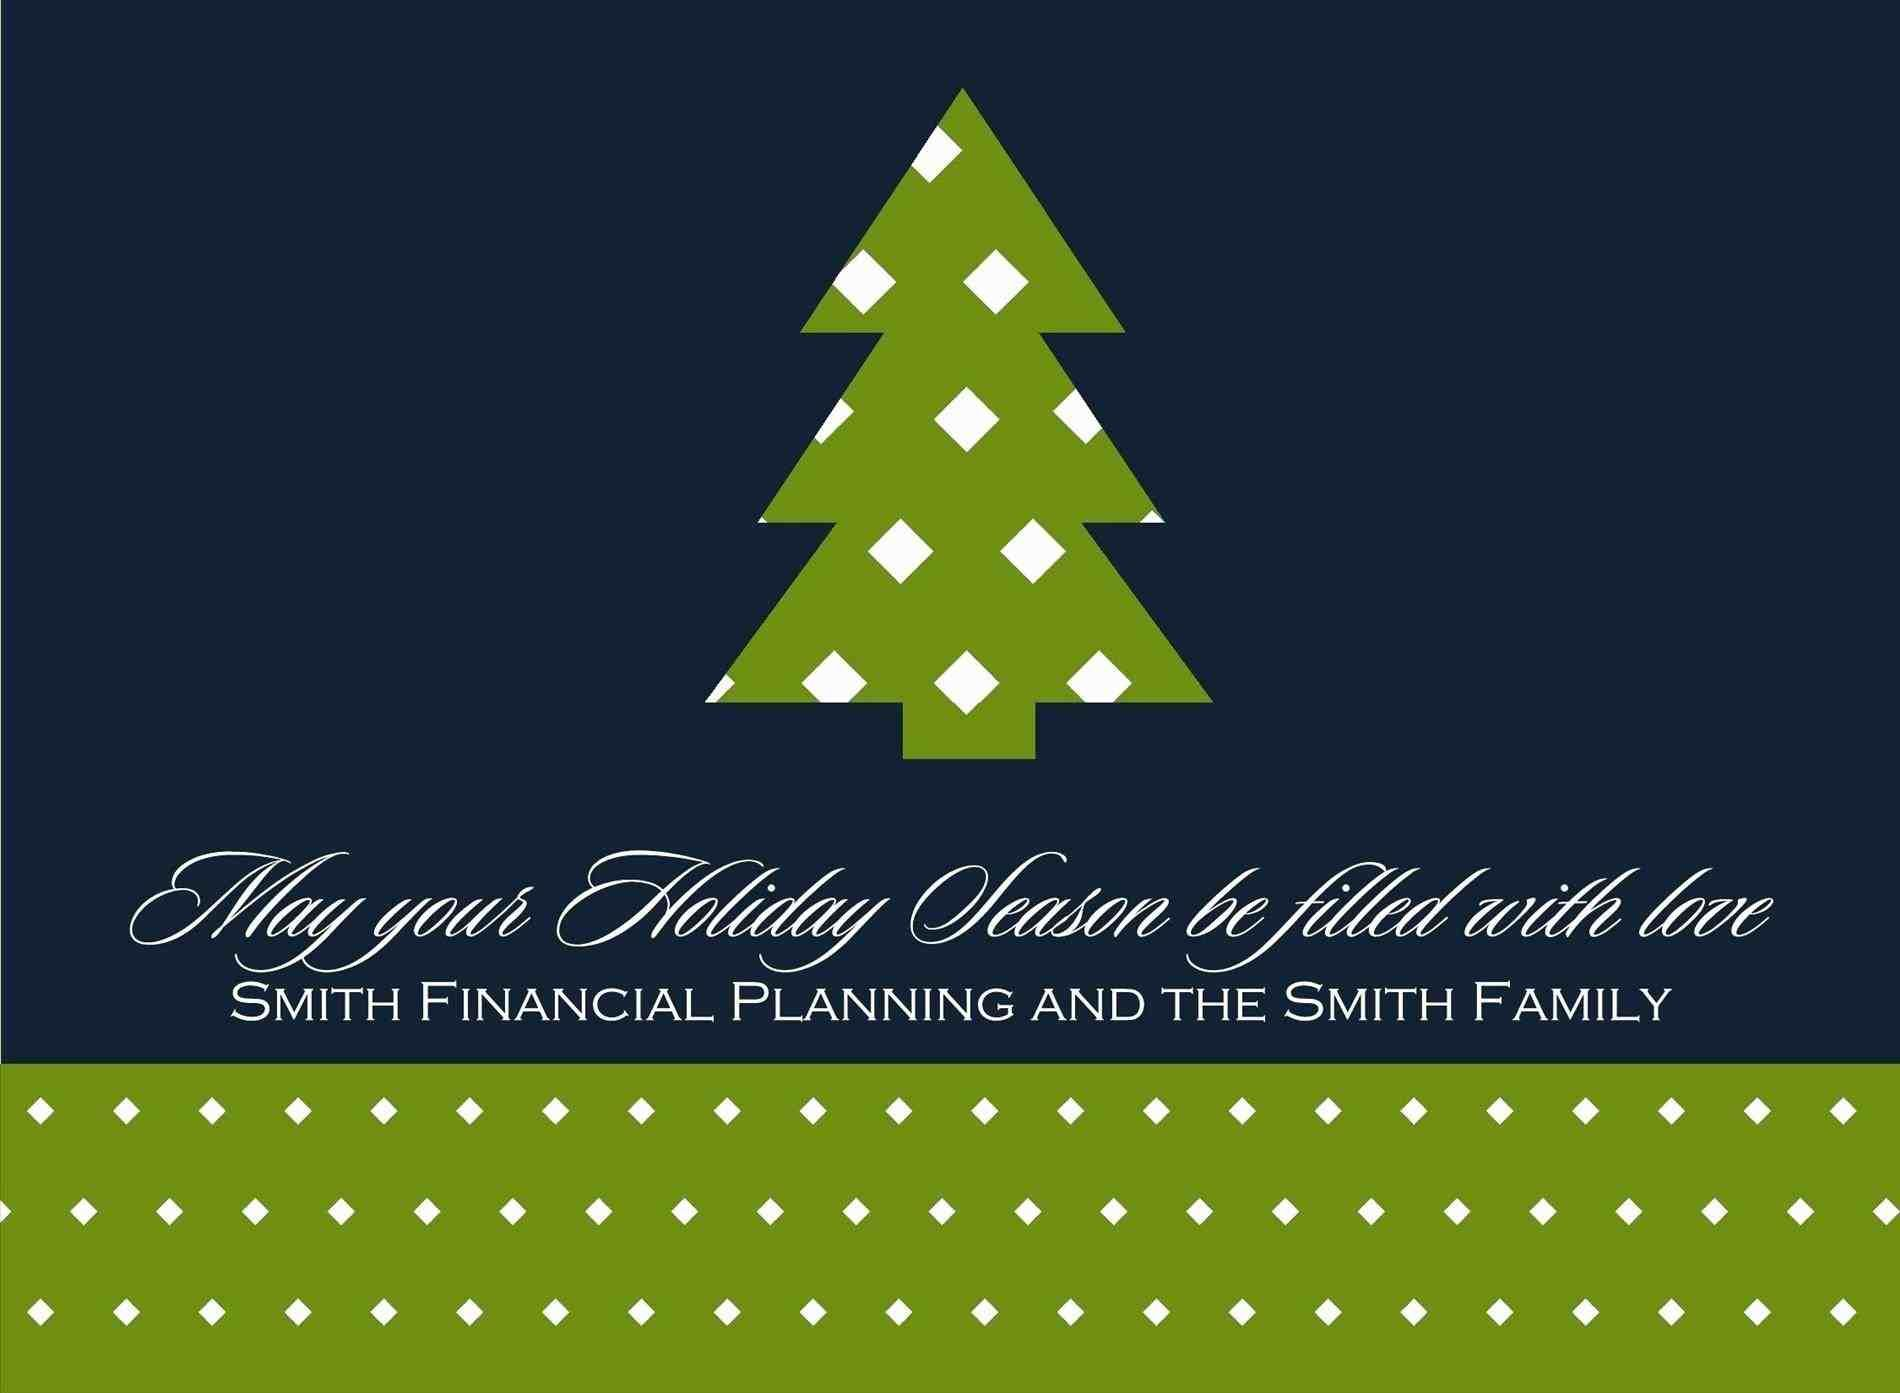 christmas greetings messages for business | Pinterest | Xmas tree ...